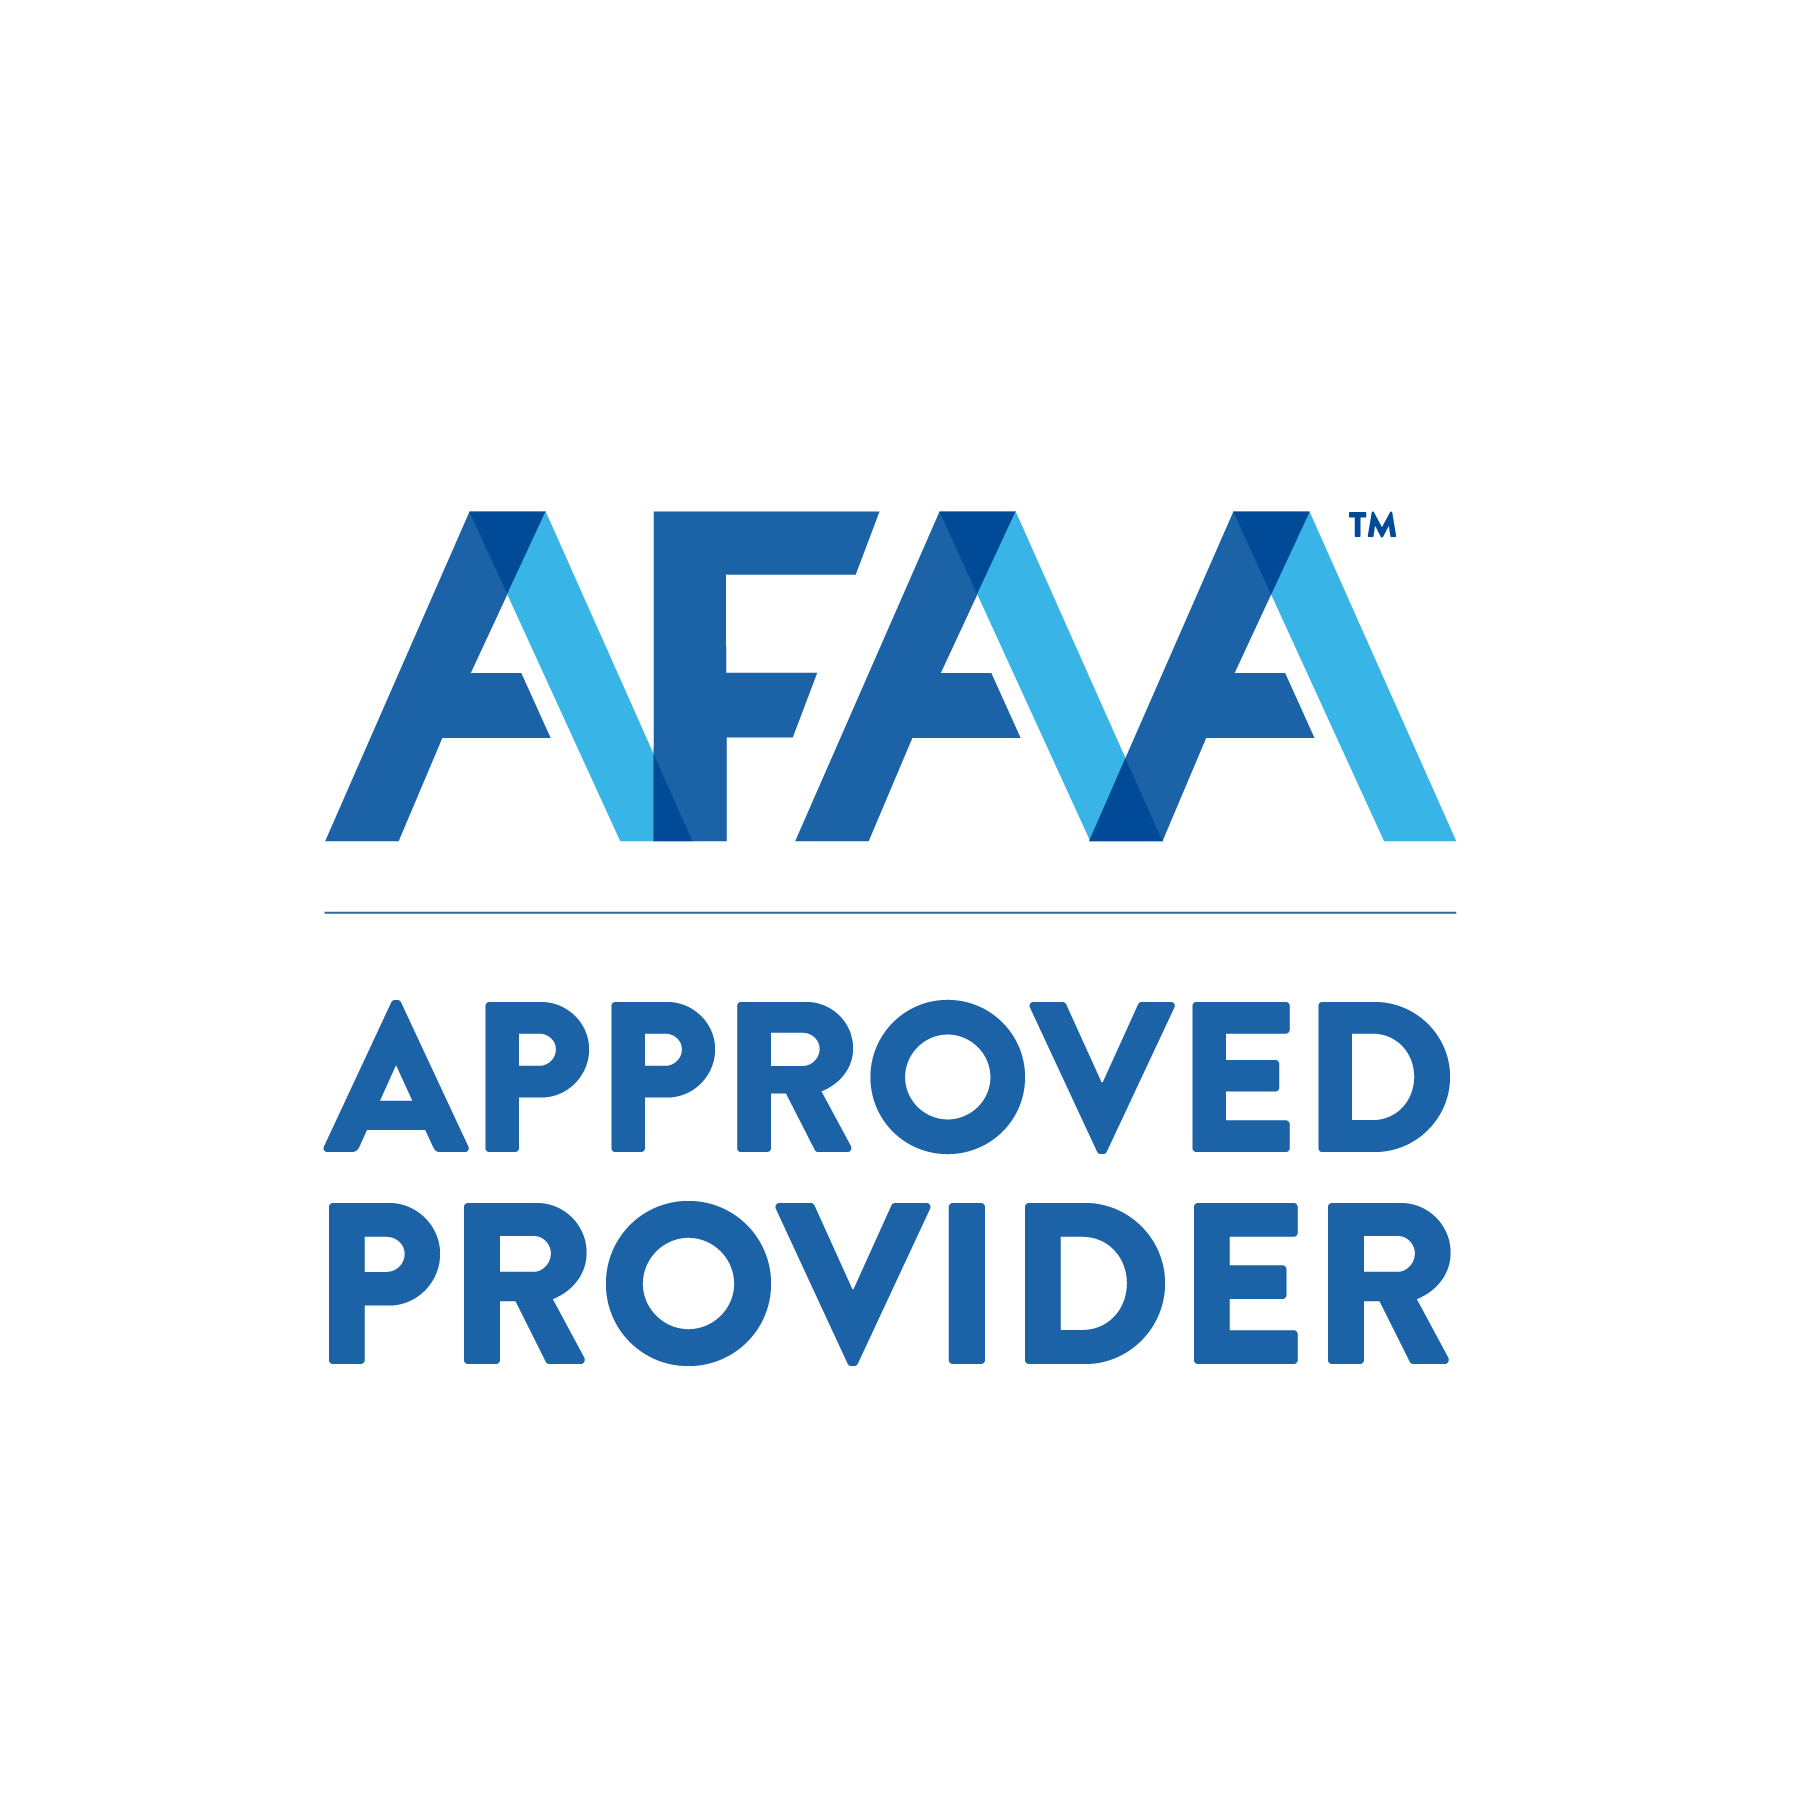 Aerobics and Fitness Association of America (AFAA) approved provider